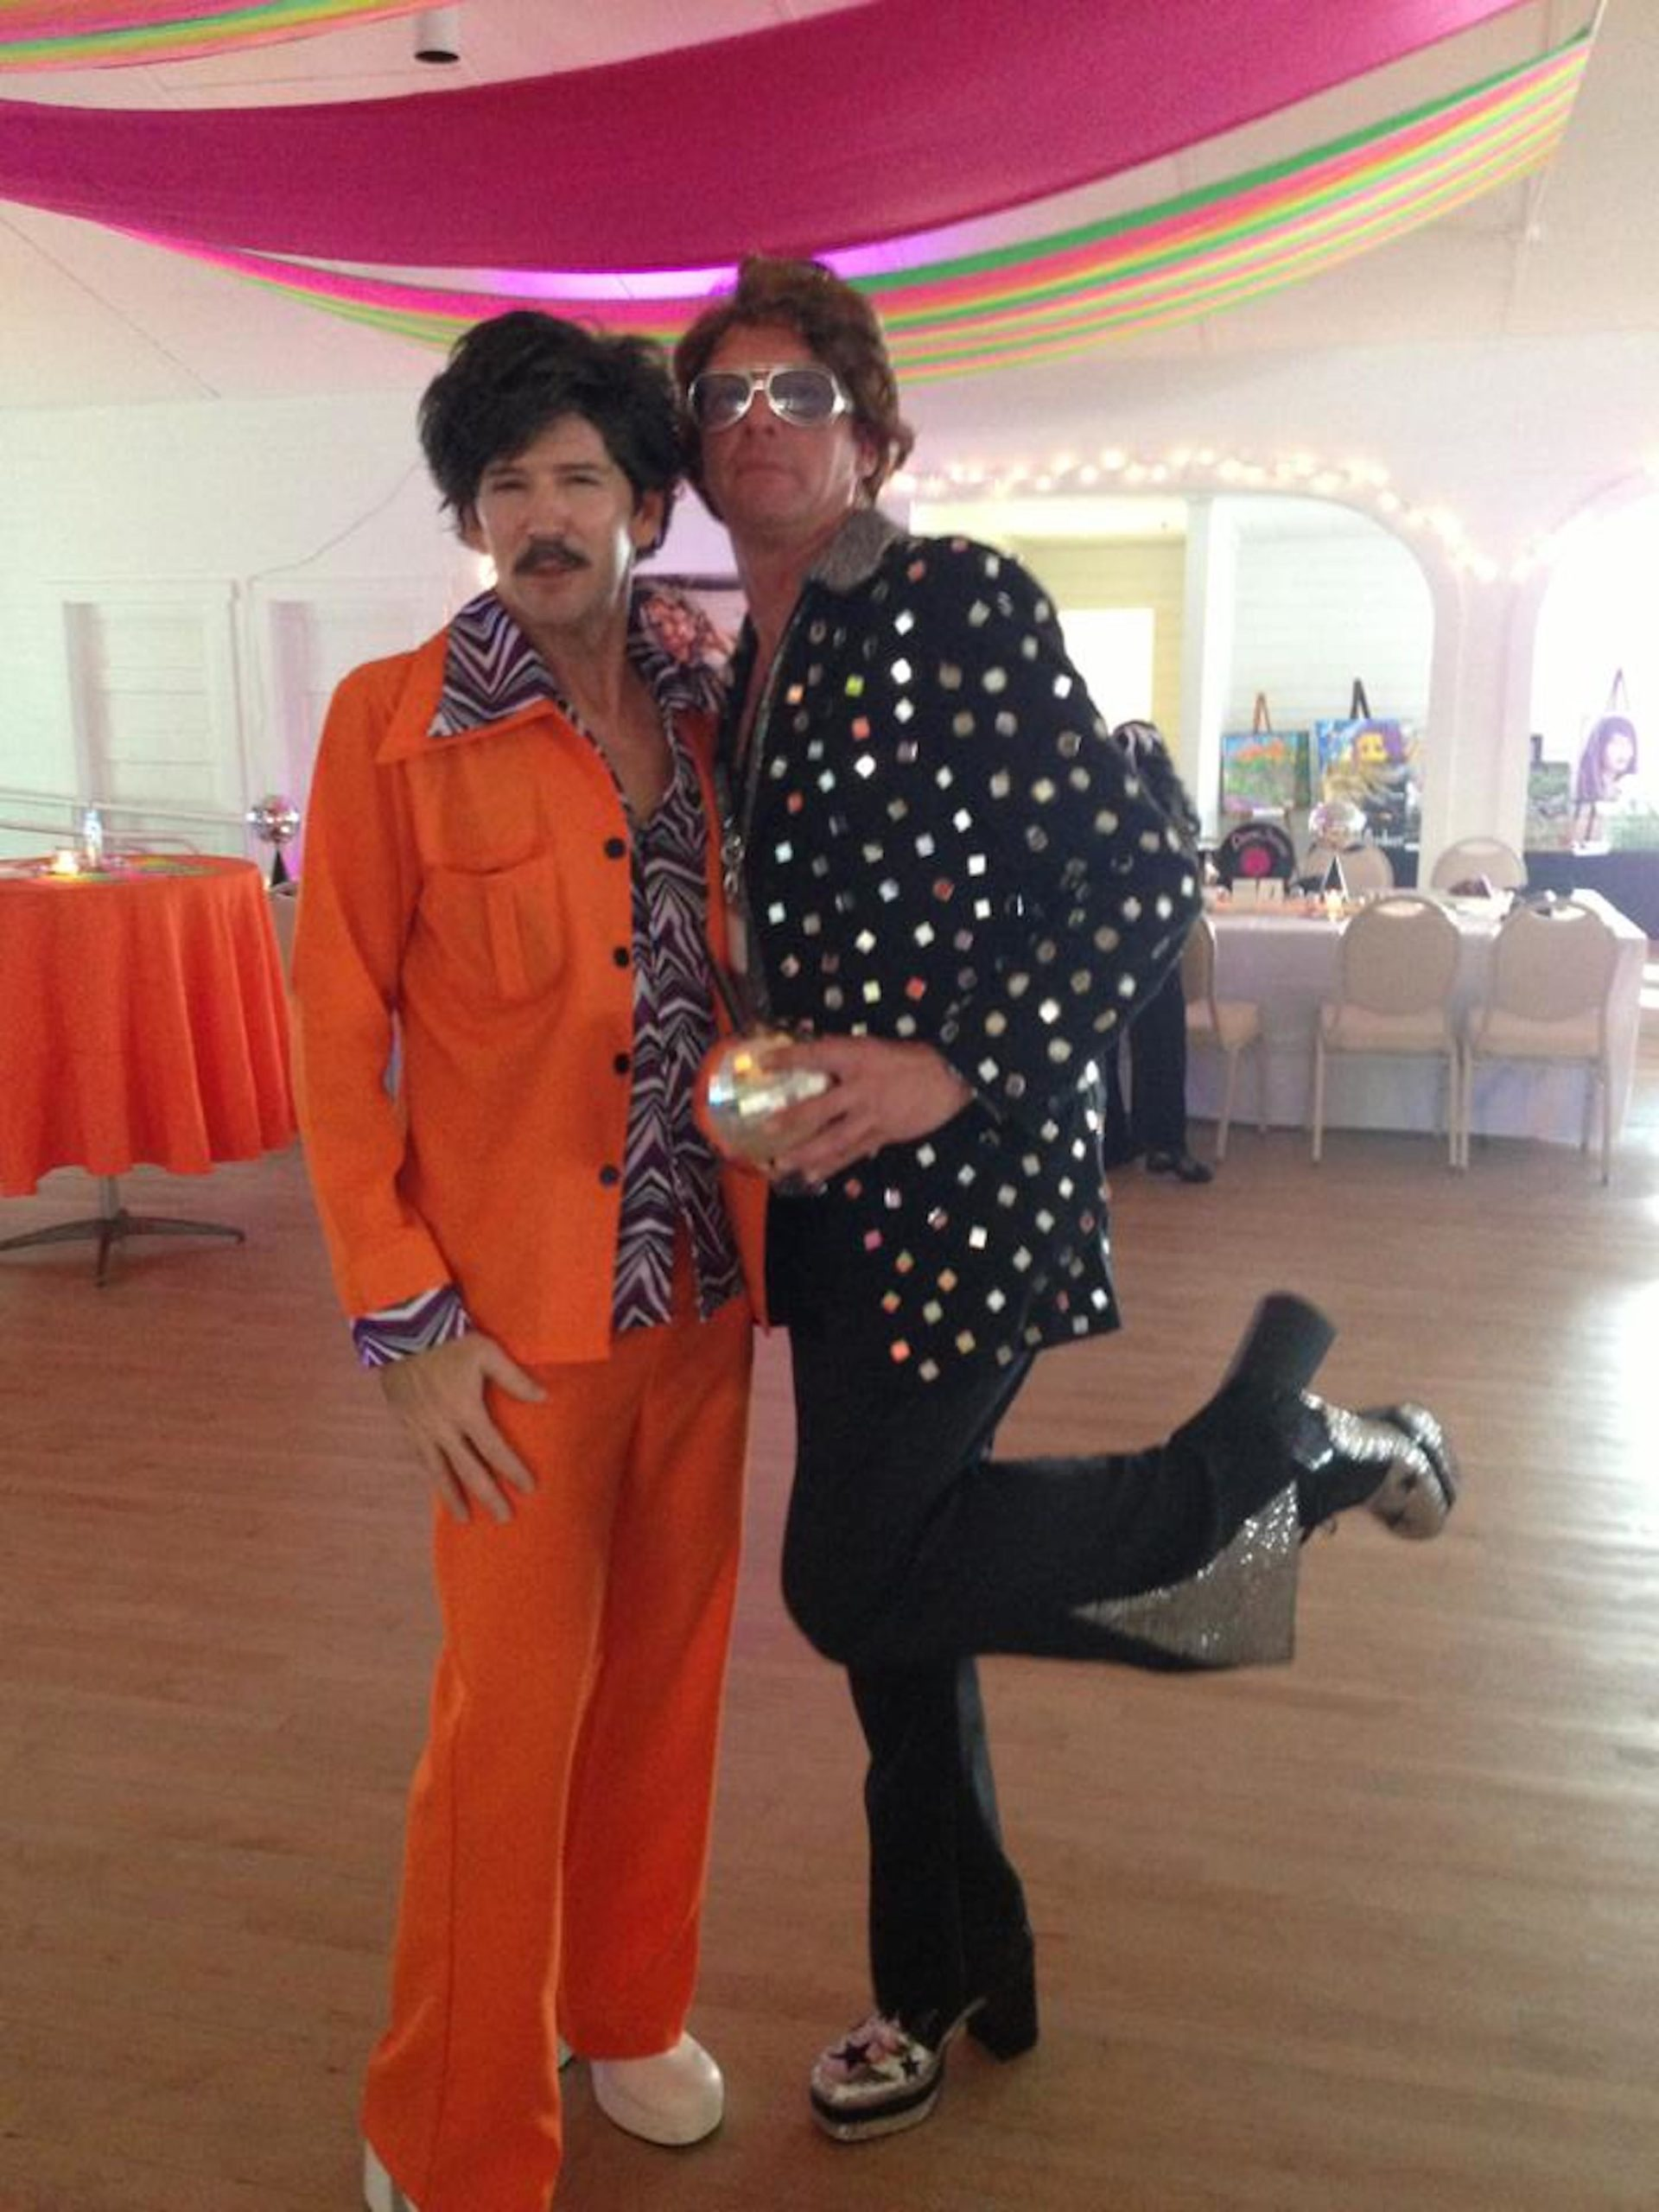 Two men in disco costumes, black and red, smile at camera.